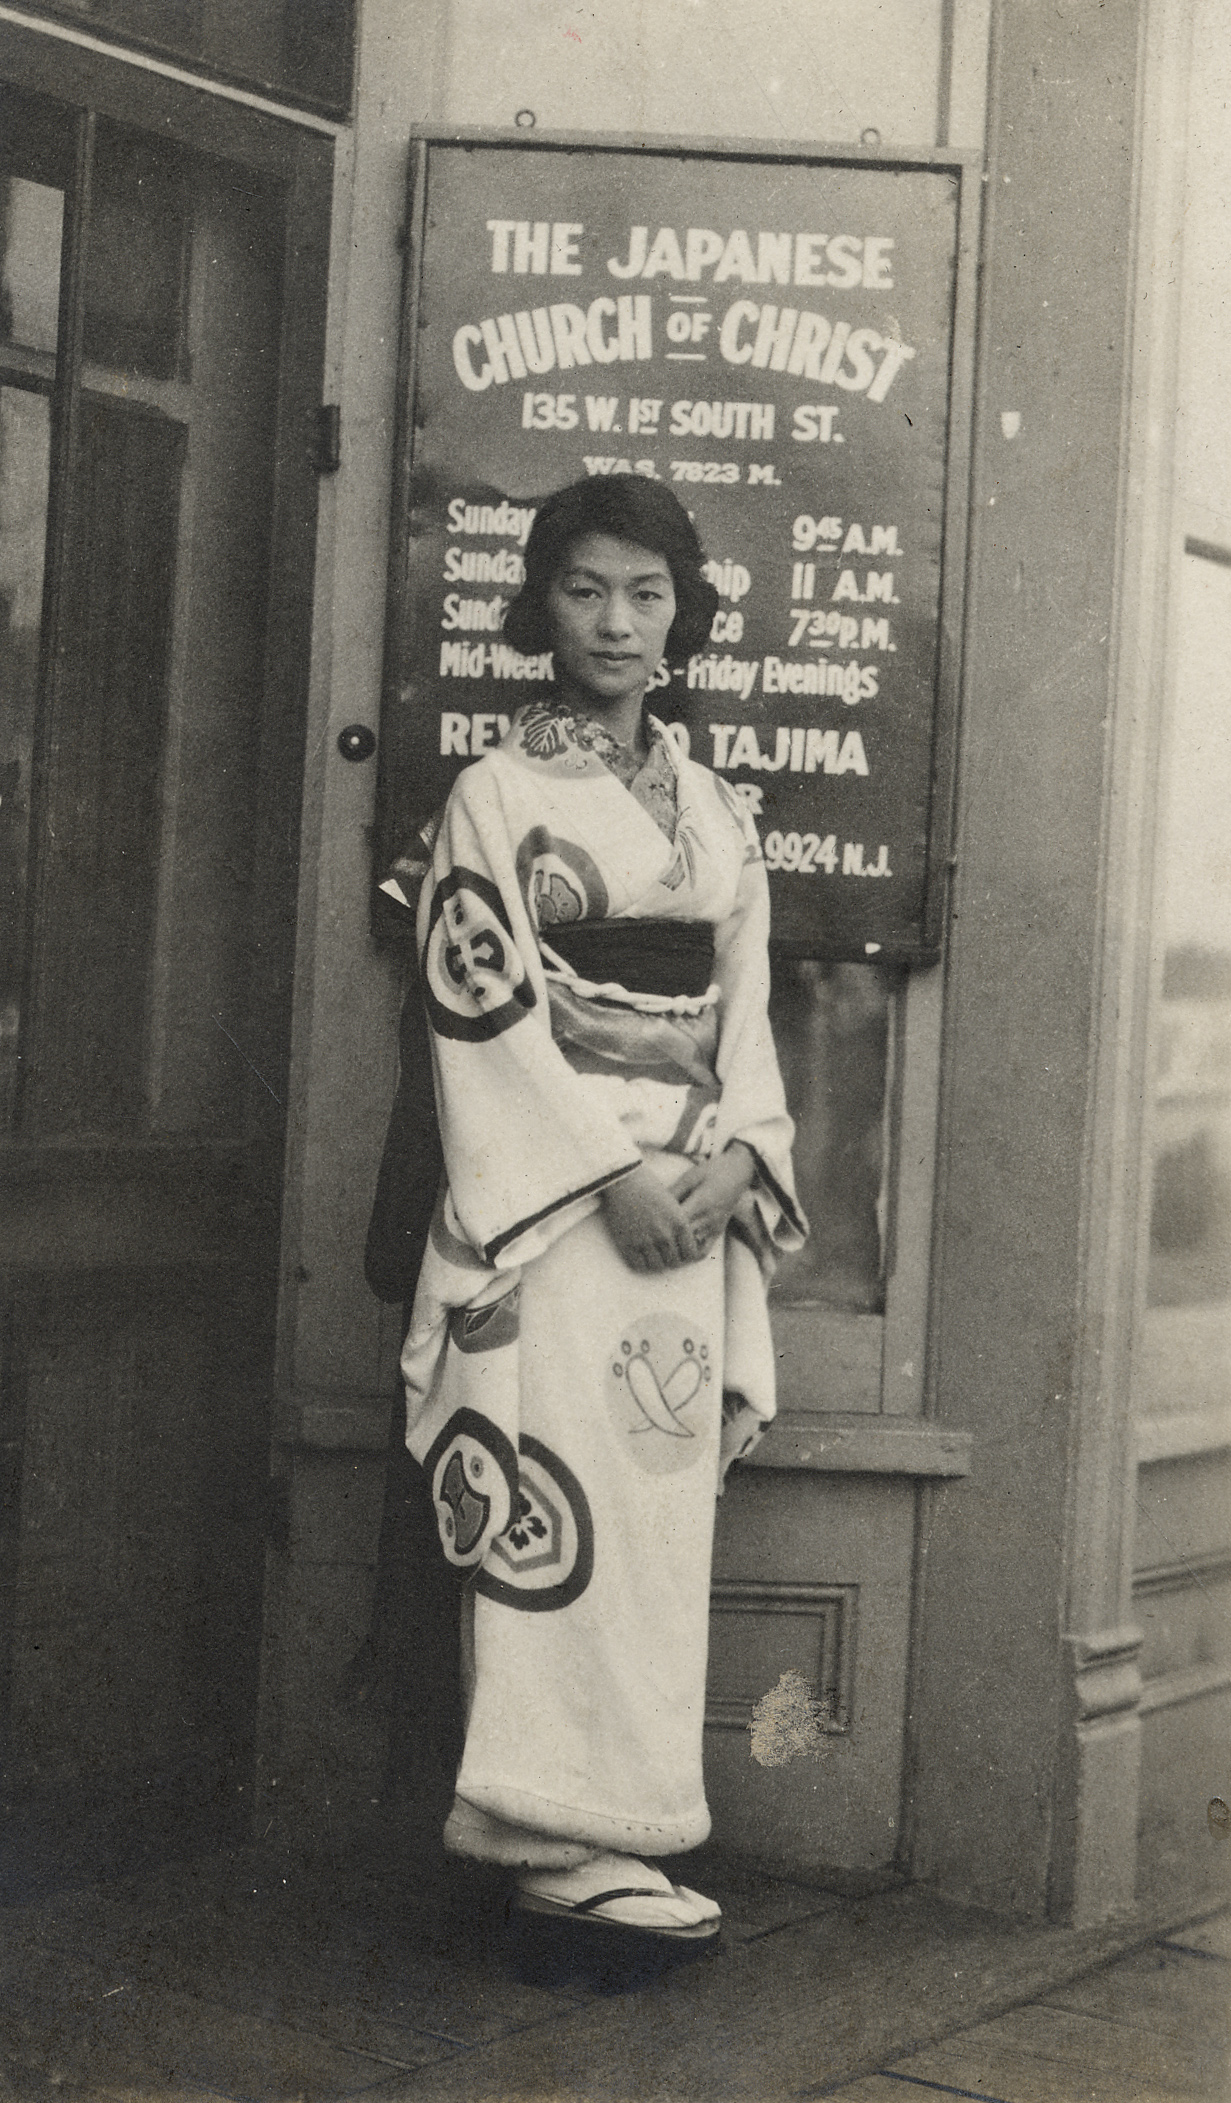 An unidentified woman stands in front of the original location of the Japanese Church of Christ in Salt Lake City's Japantown, circa early 1920's.